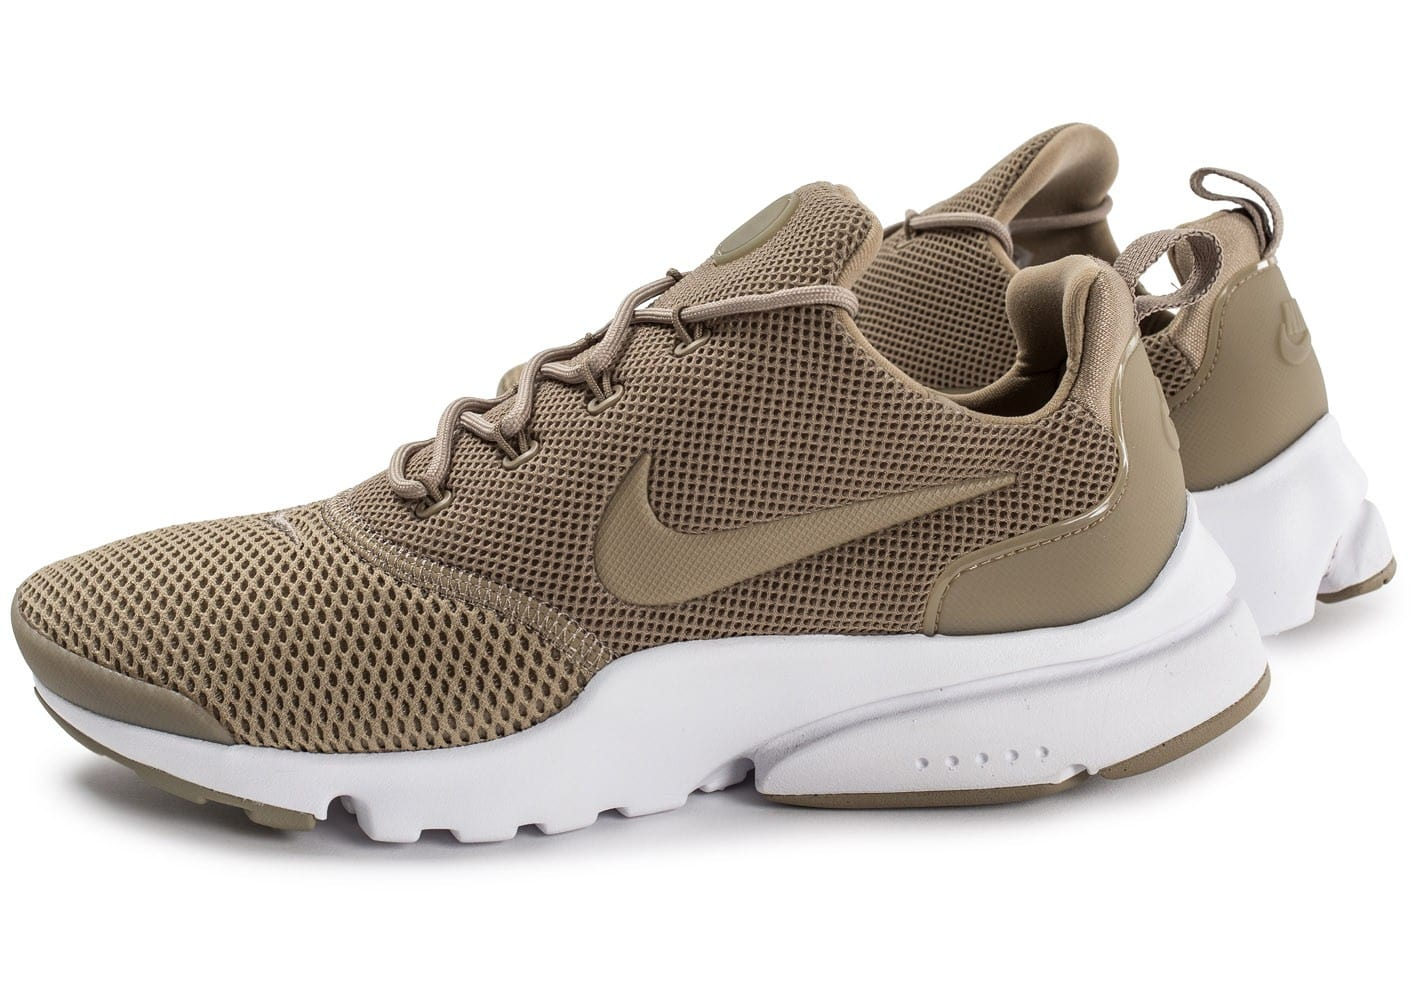 nike presto fly khaki chaussures homme chausport. Black Bedroom Furniture Sets. Home Design Ideas